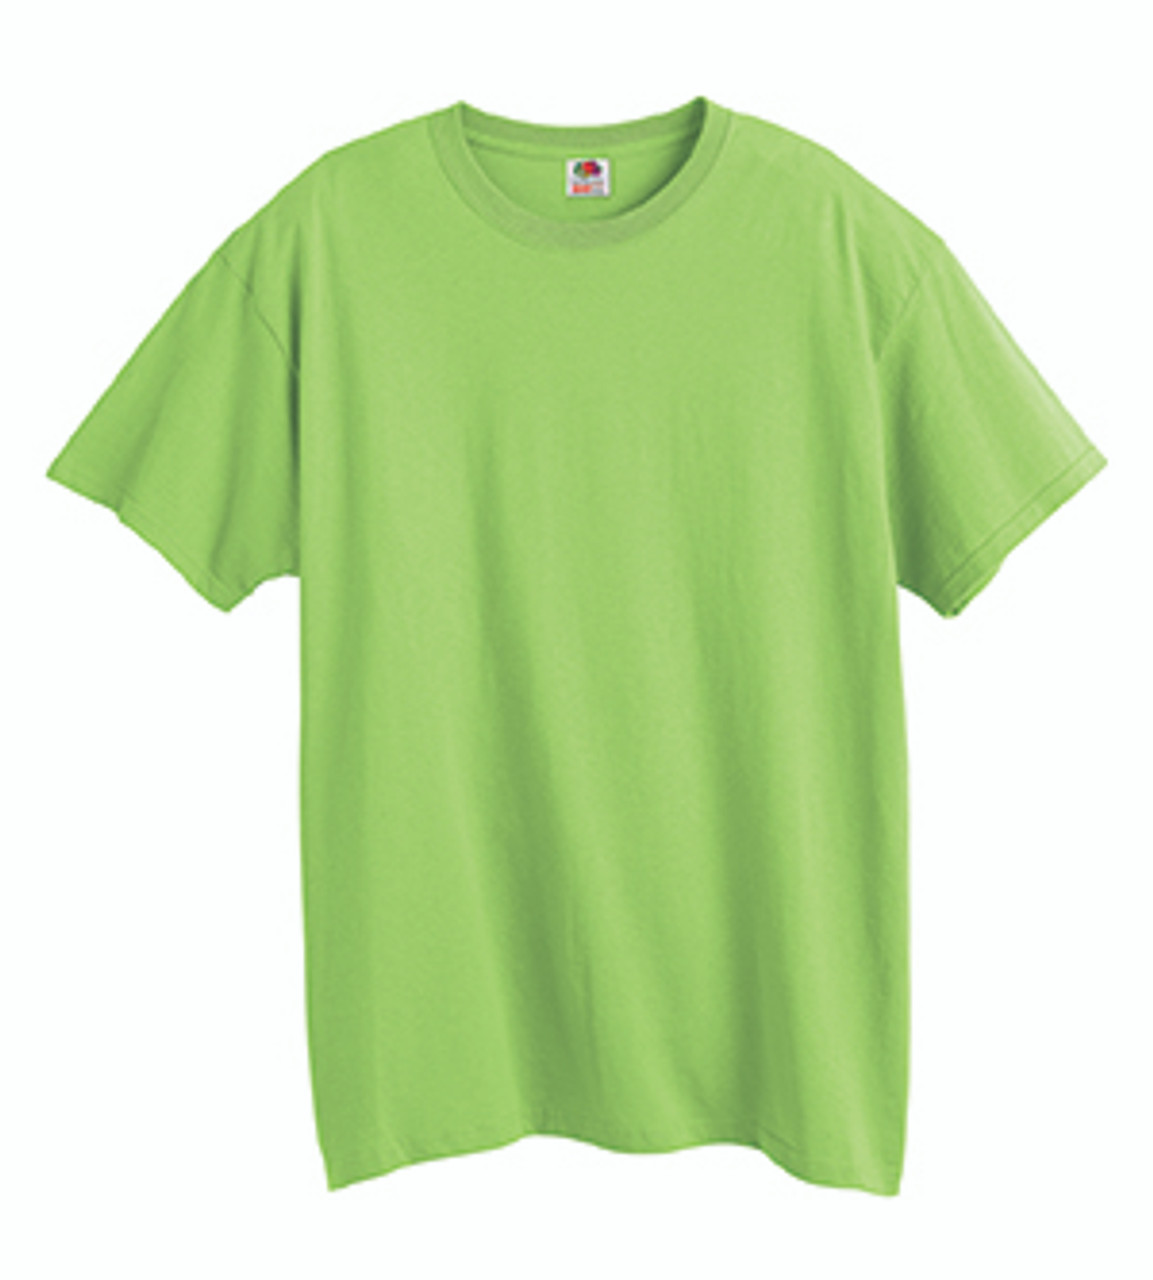 7a83fabf Fruit of the Loom 3930 Adult Heavy Cotton T-Shirt